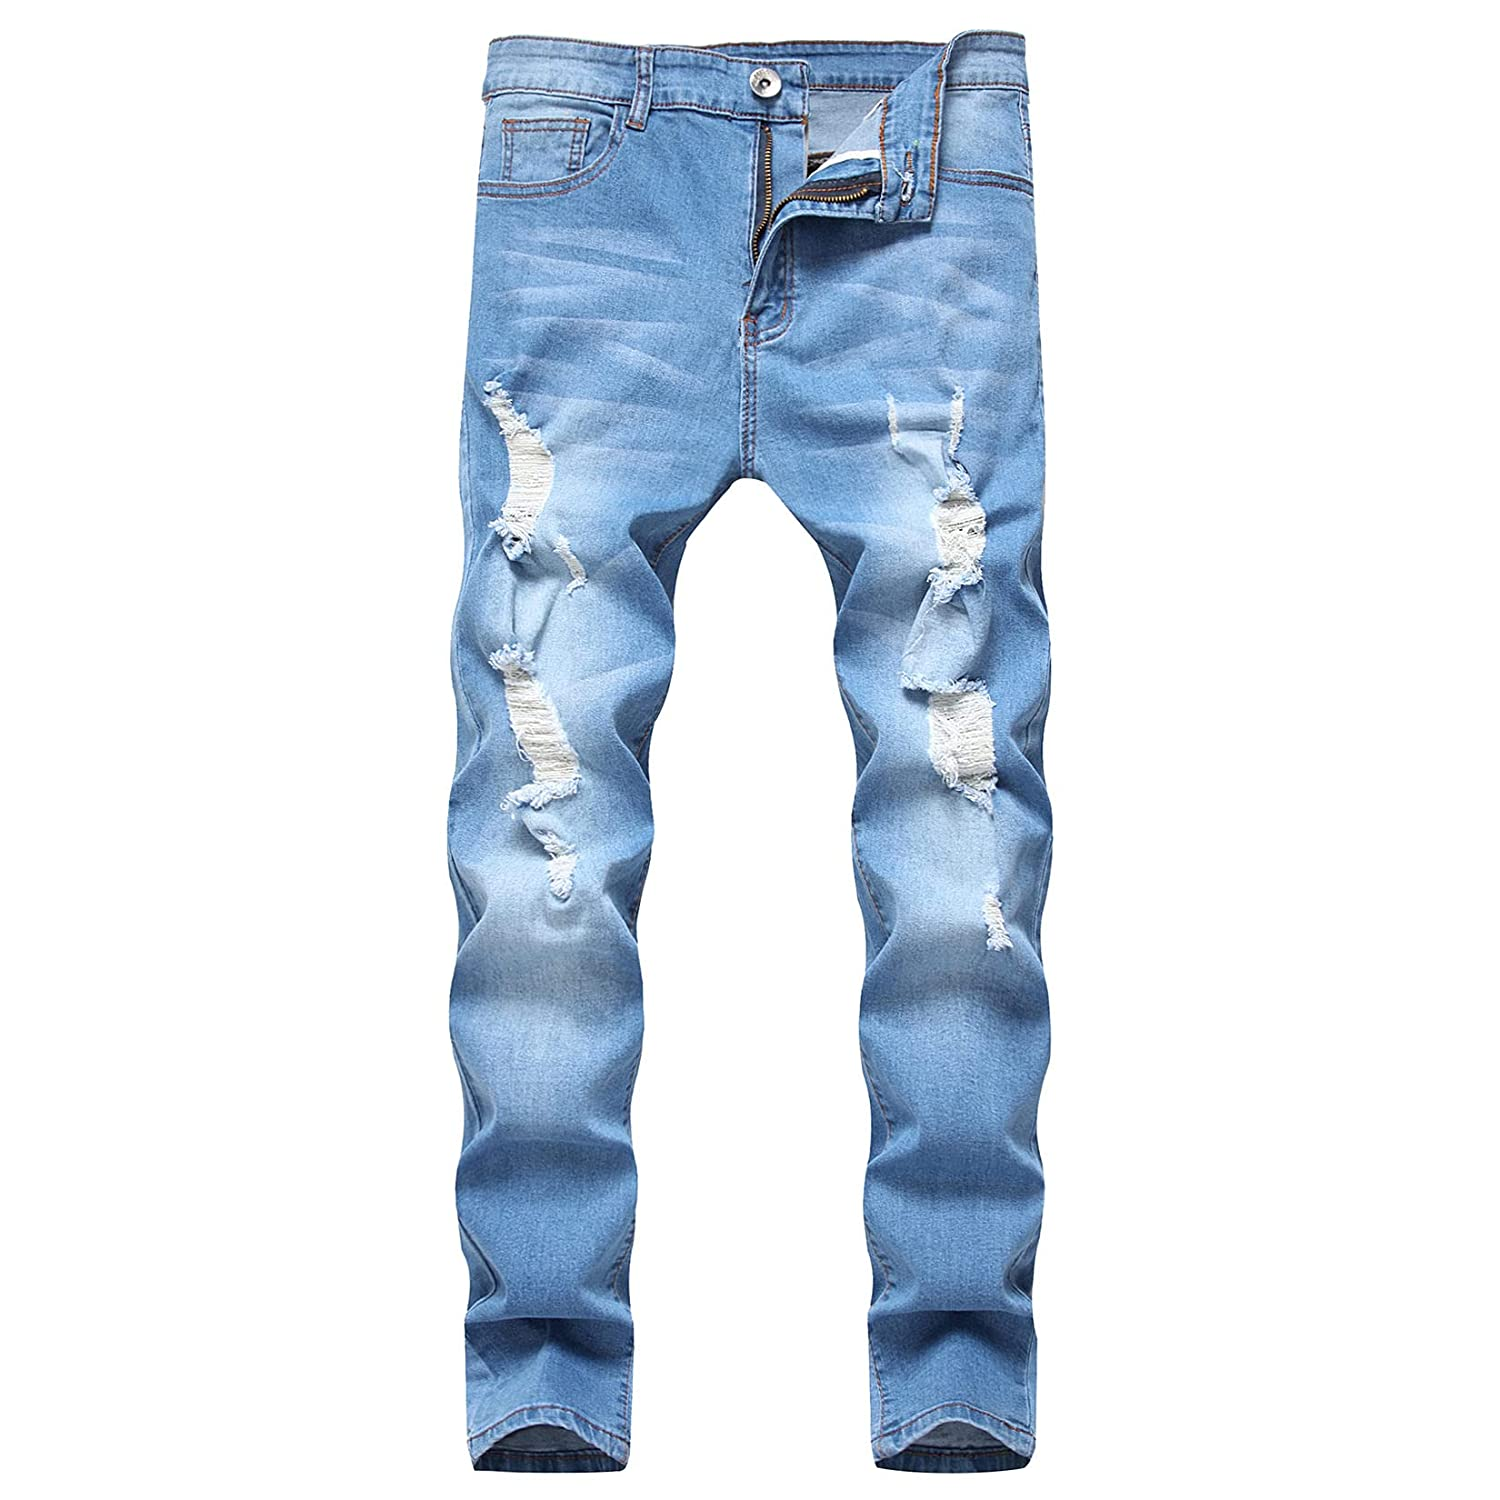 Ripped NEW Jeans for Year-end annual account Men Mens Destroyed Distressed Stretch Fit Slim